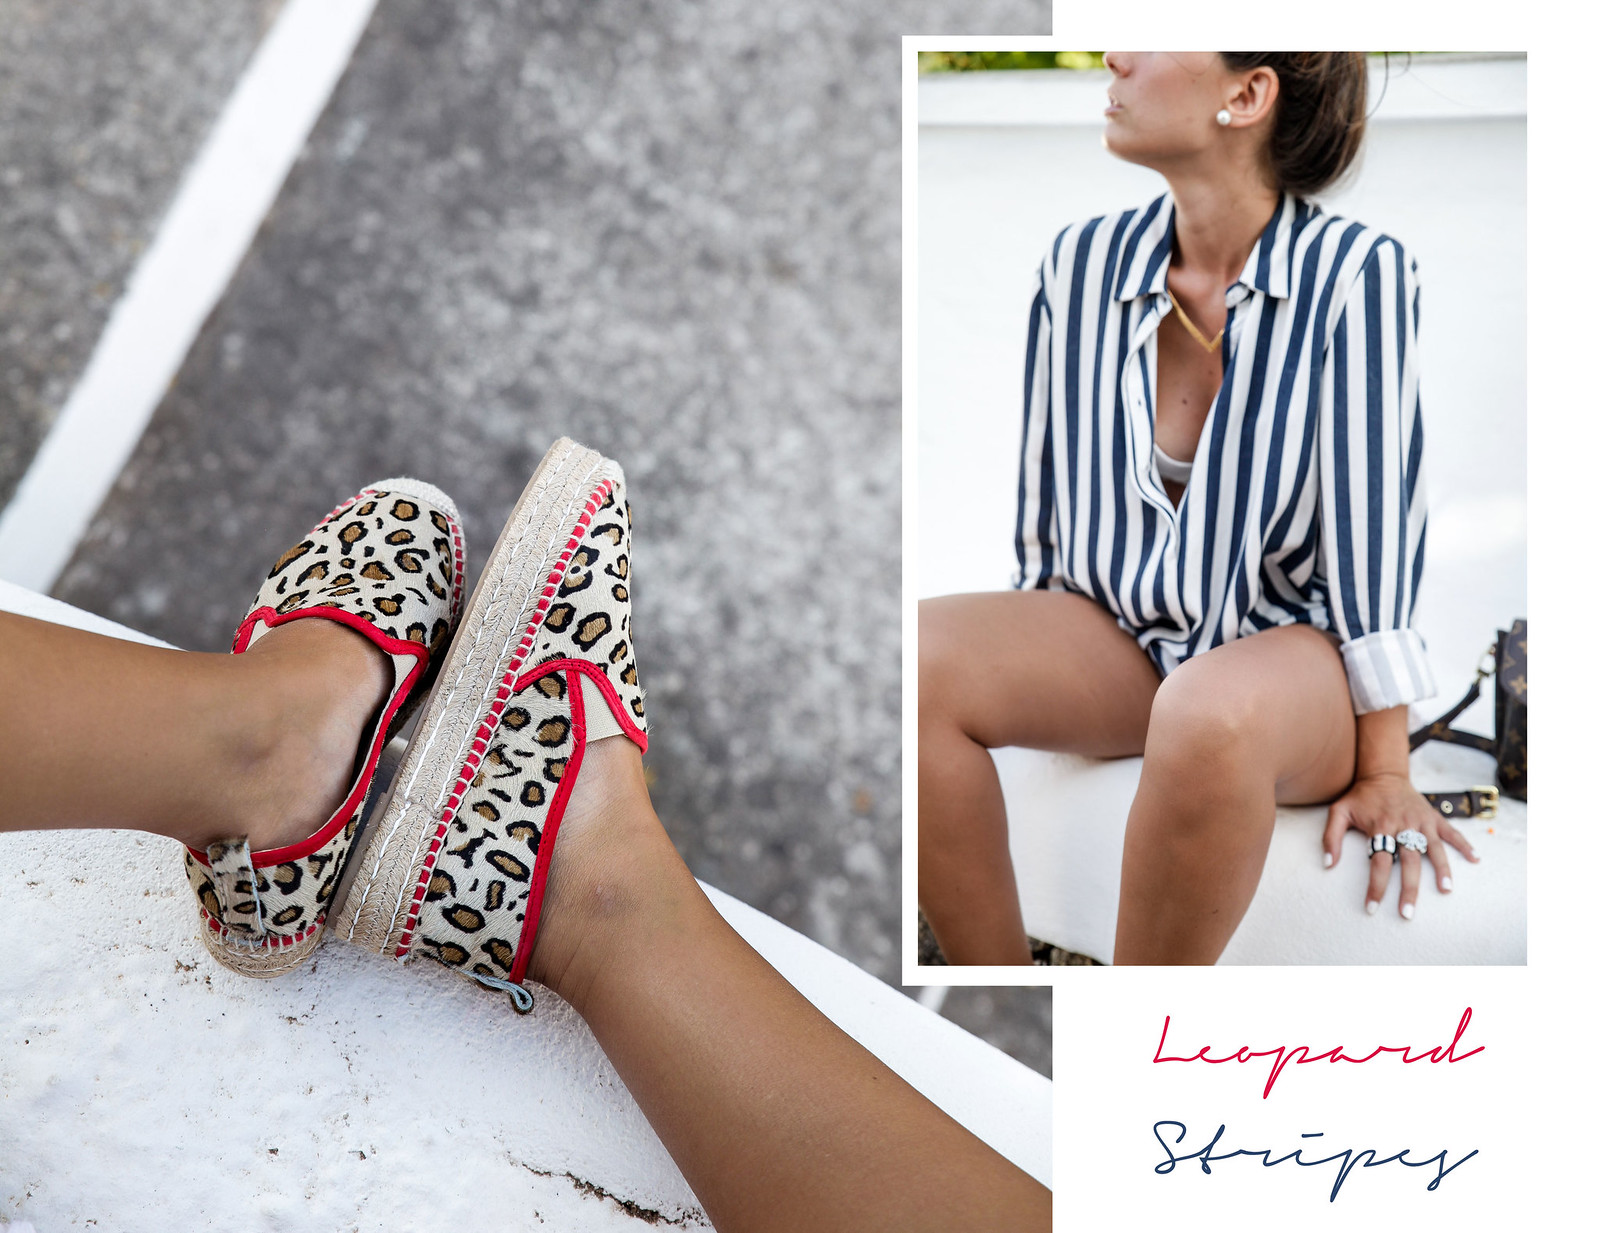 07_Leopard_and_stripes_perfec_mix_print_outfit_THEGUESTGIRL_palmaira_sandals_leopard_inspo